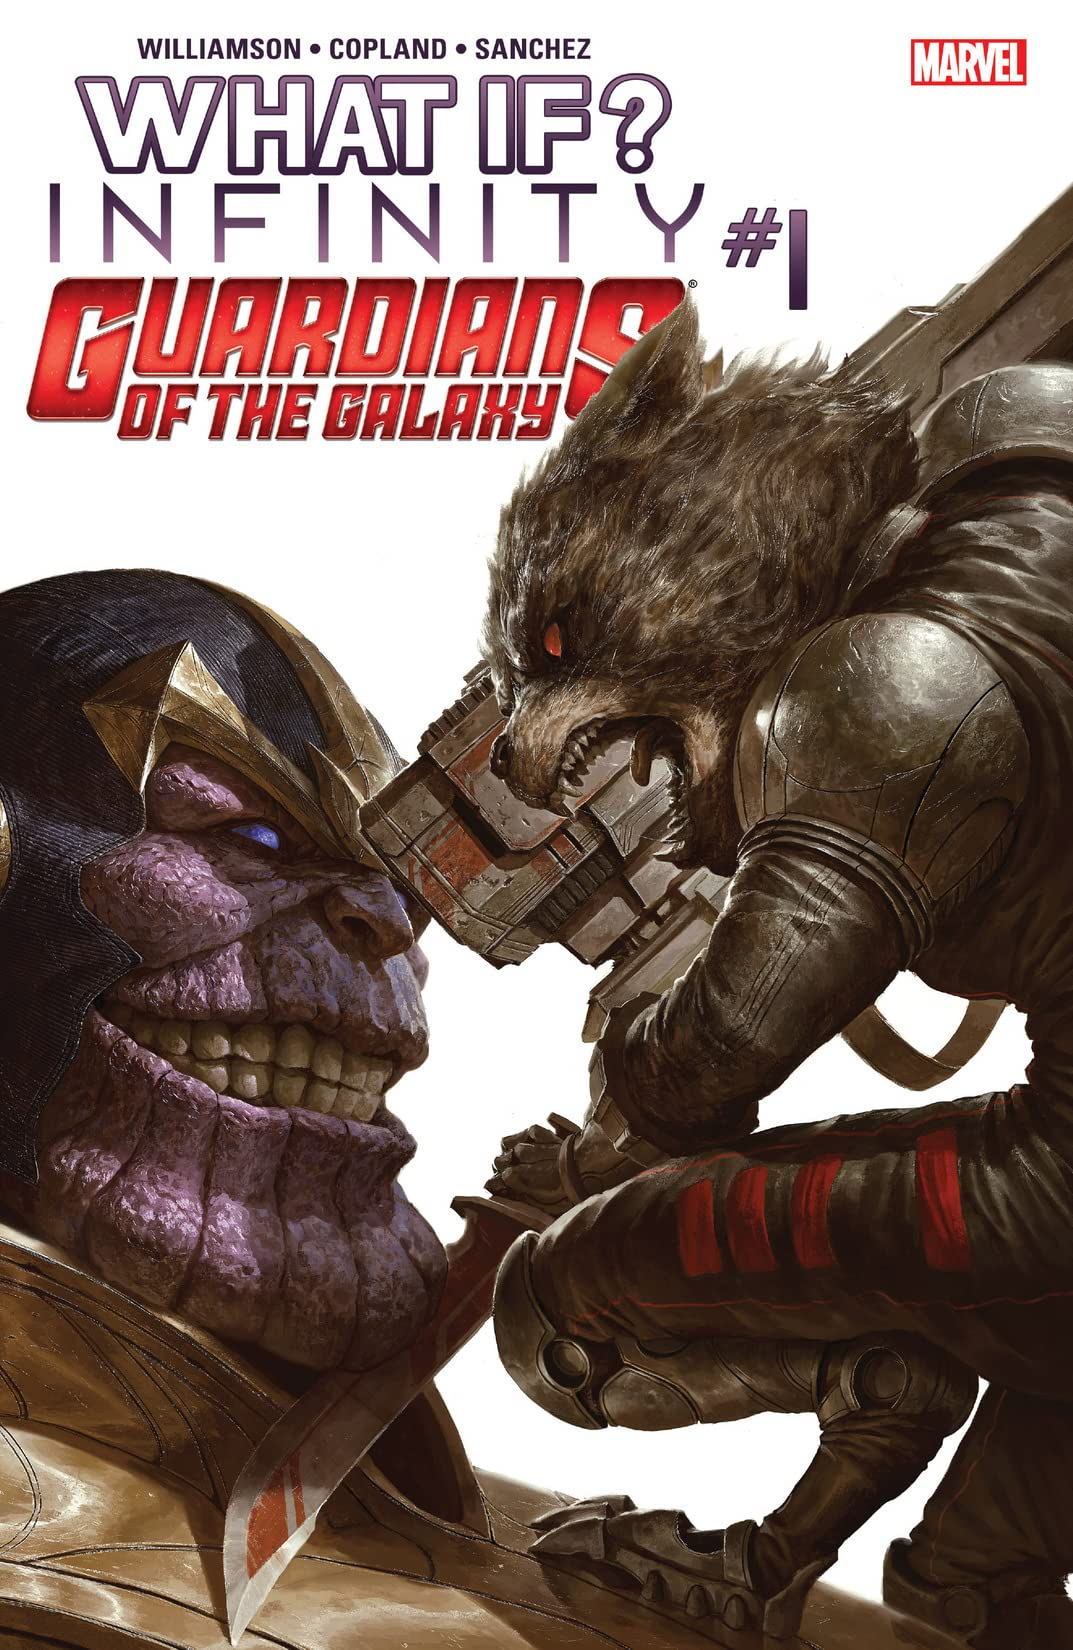 What If? Infinity - Guardians of the Galaxy #1